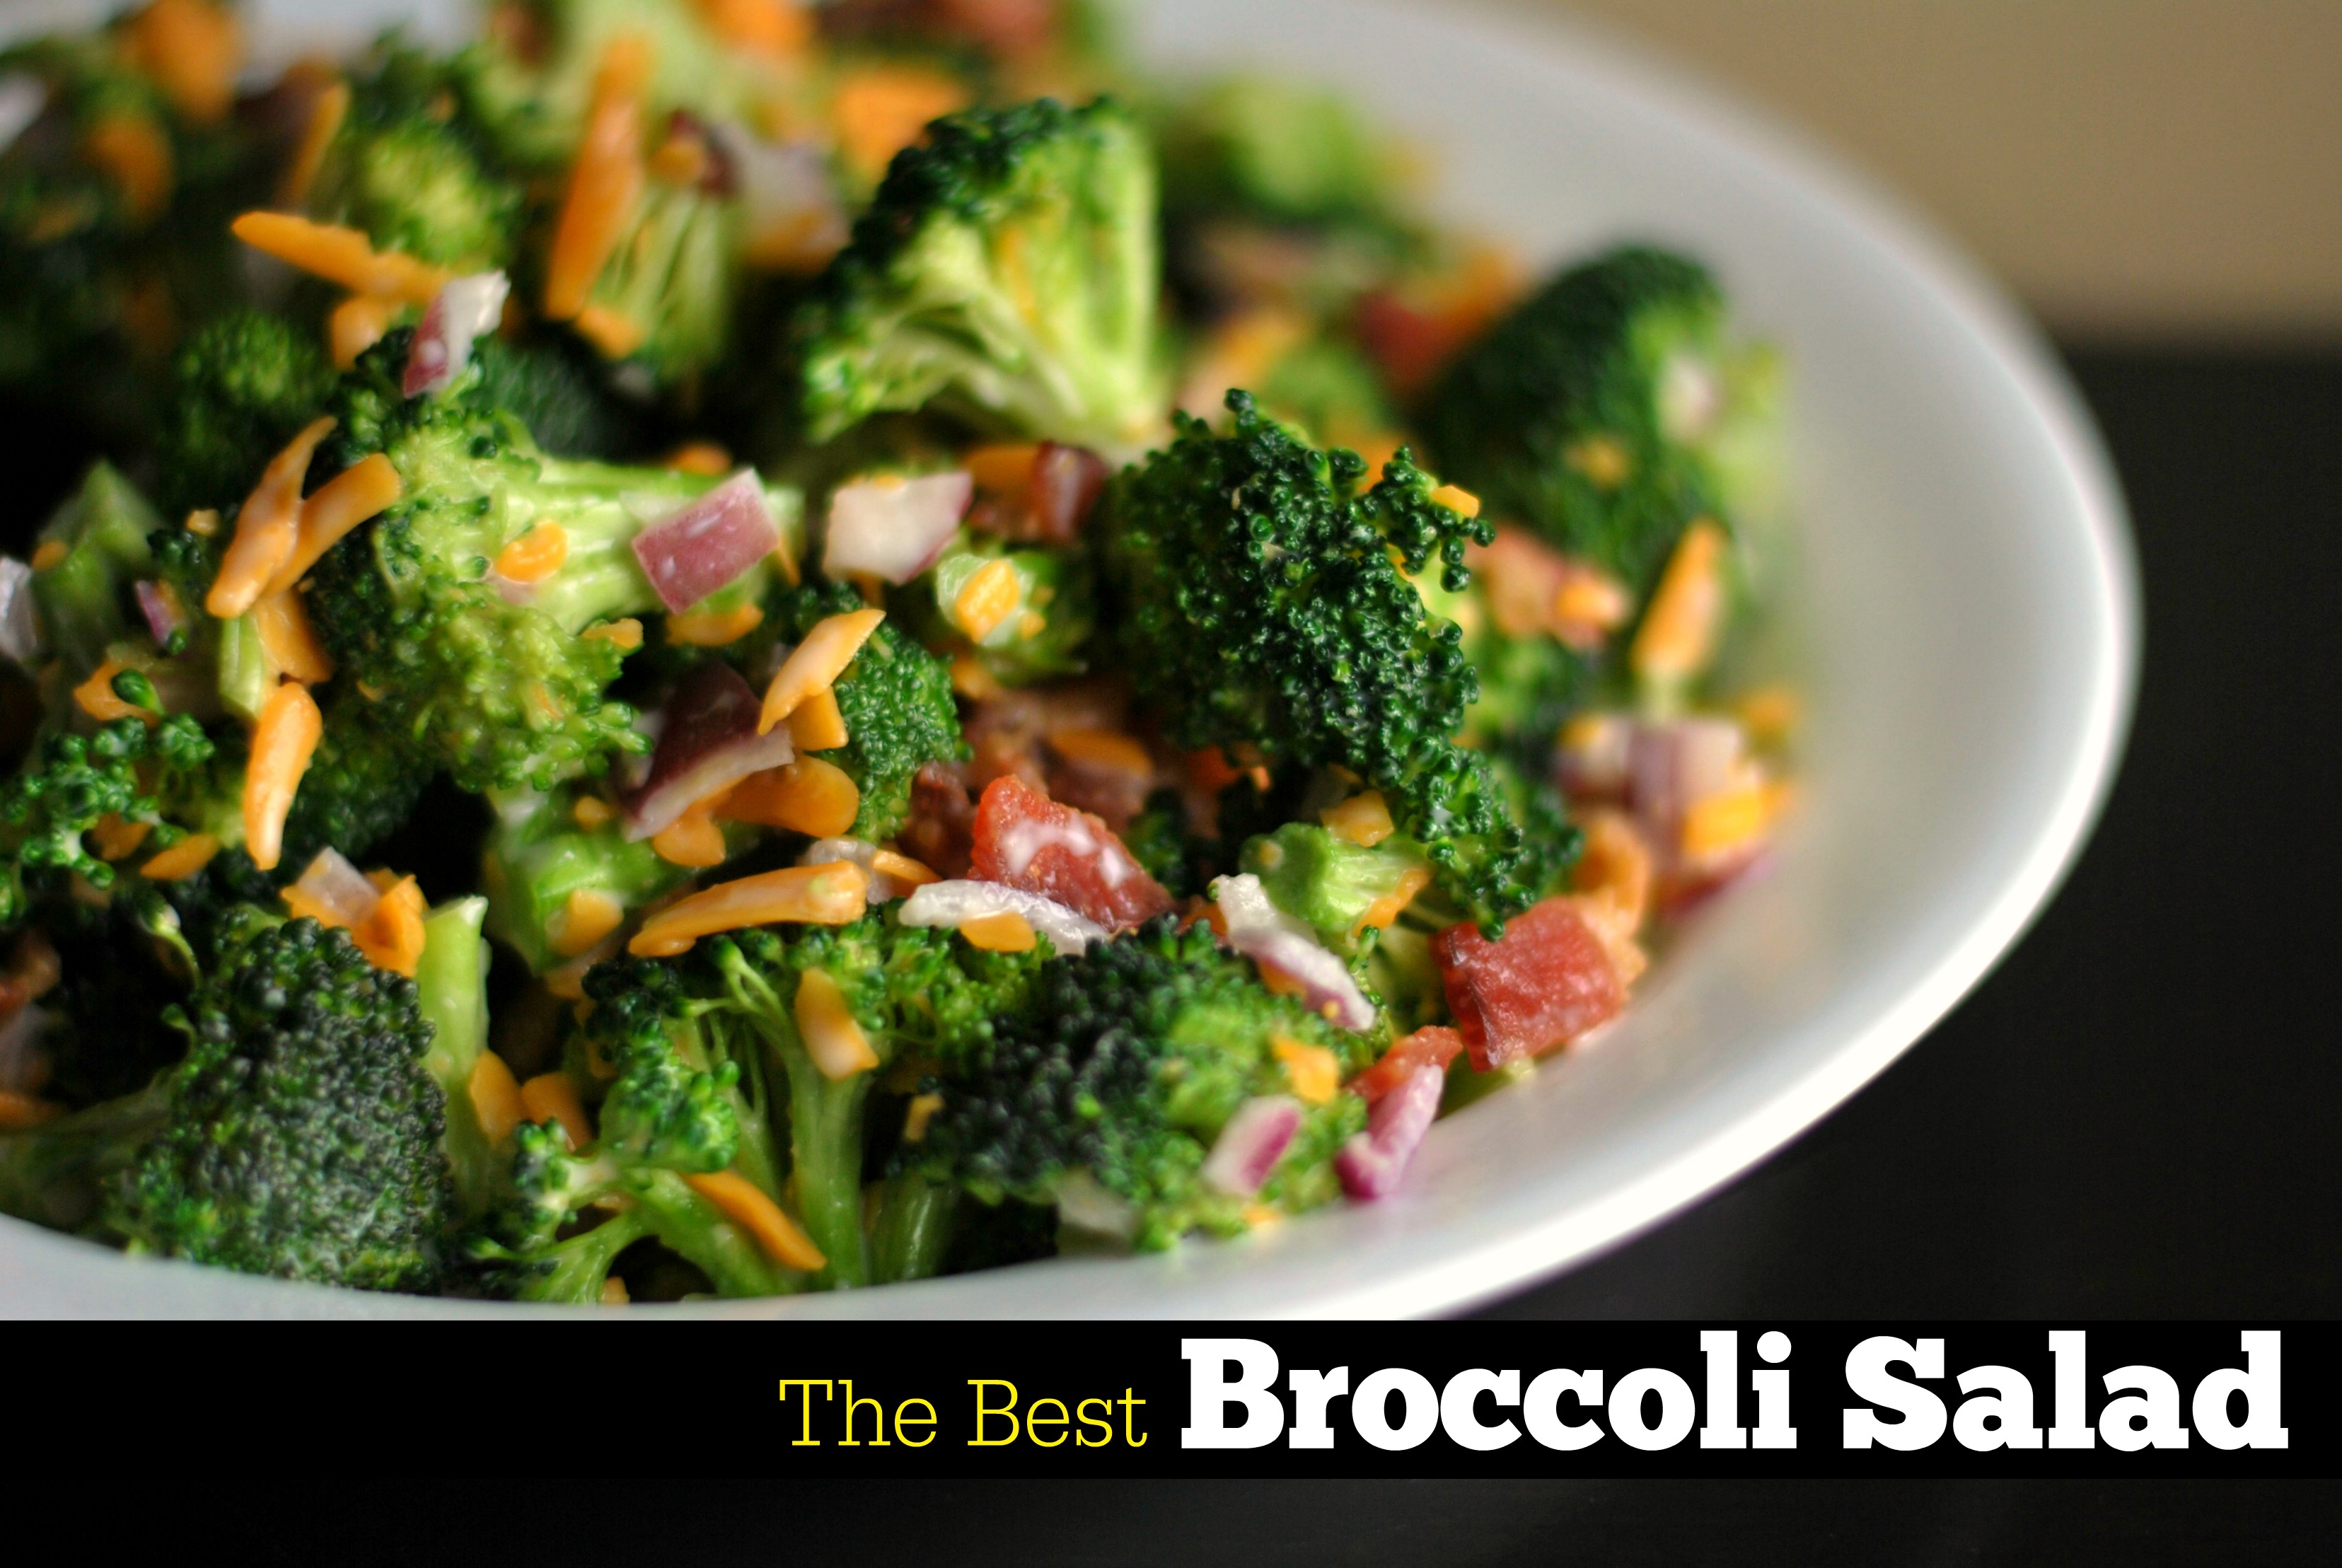 The Best Broccoli Salad - Aunt Bee's Recipes